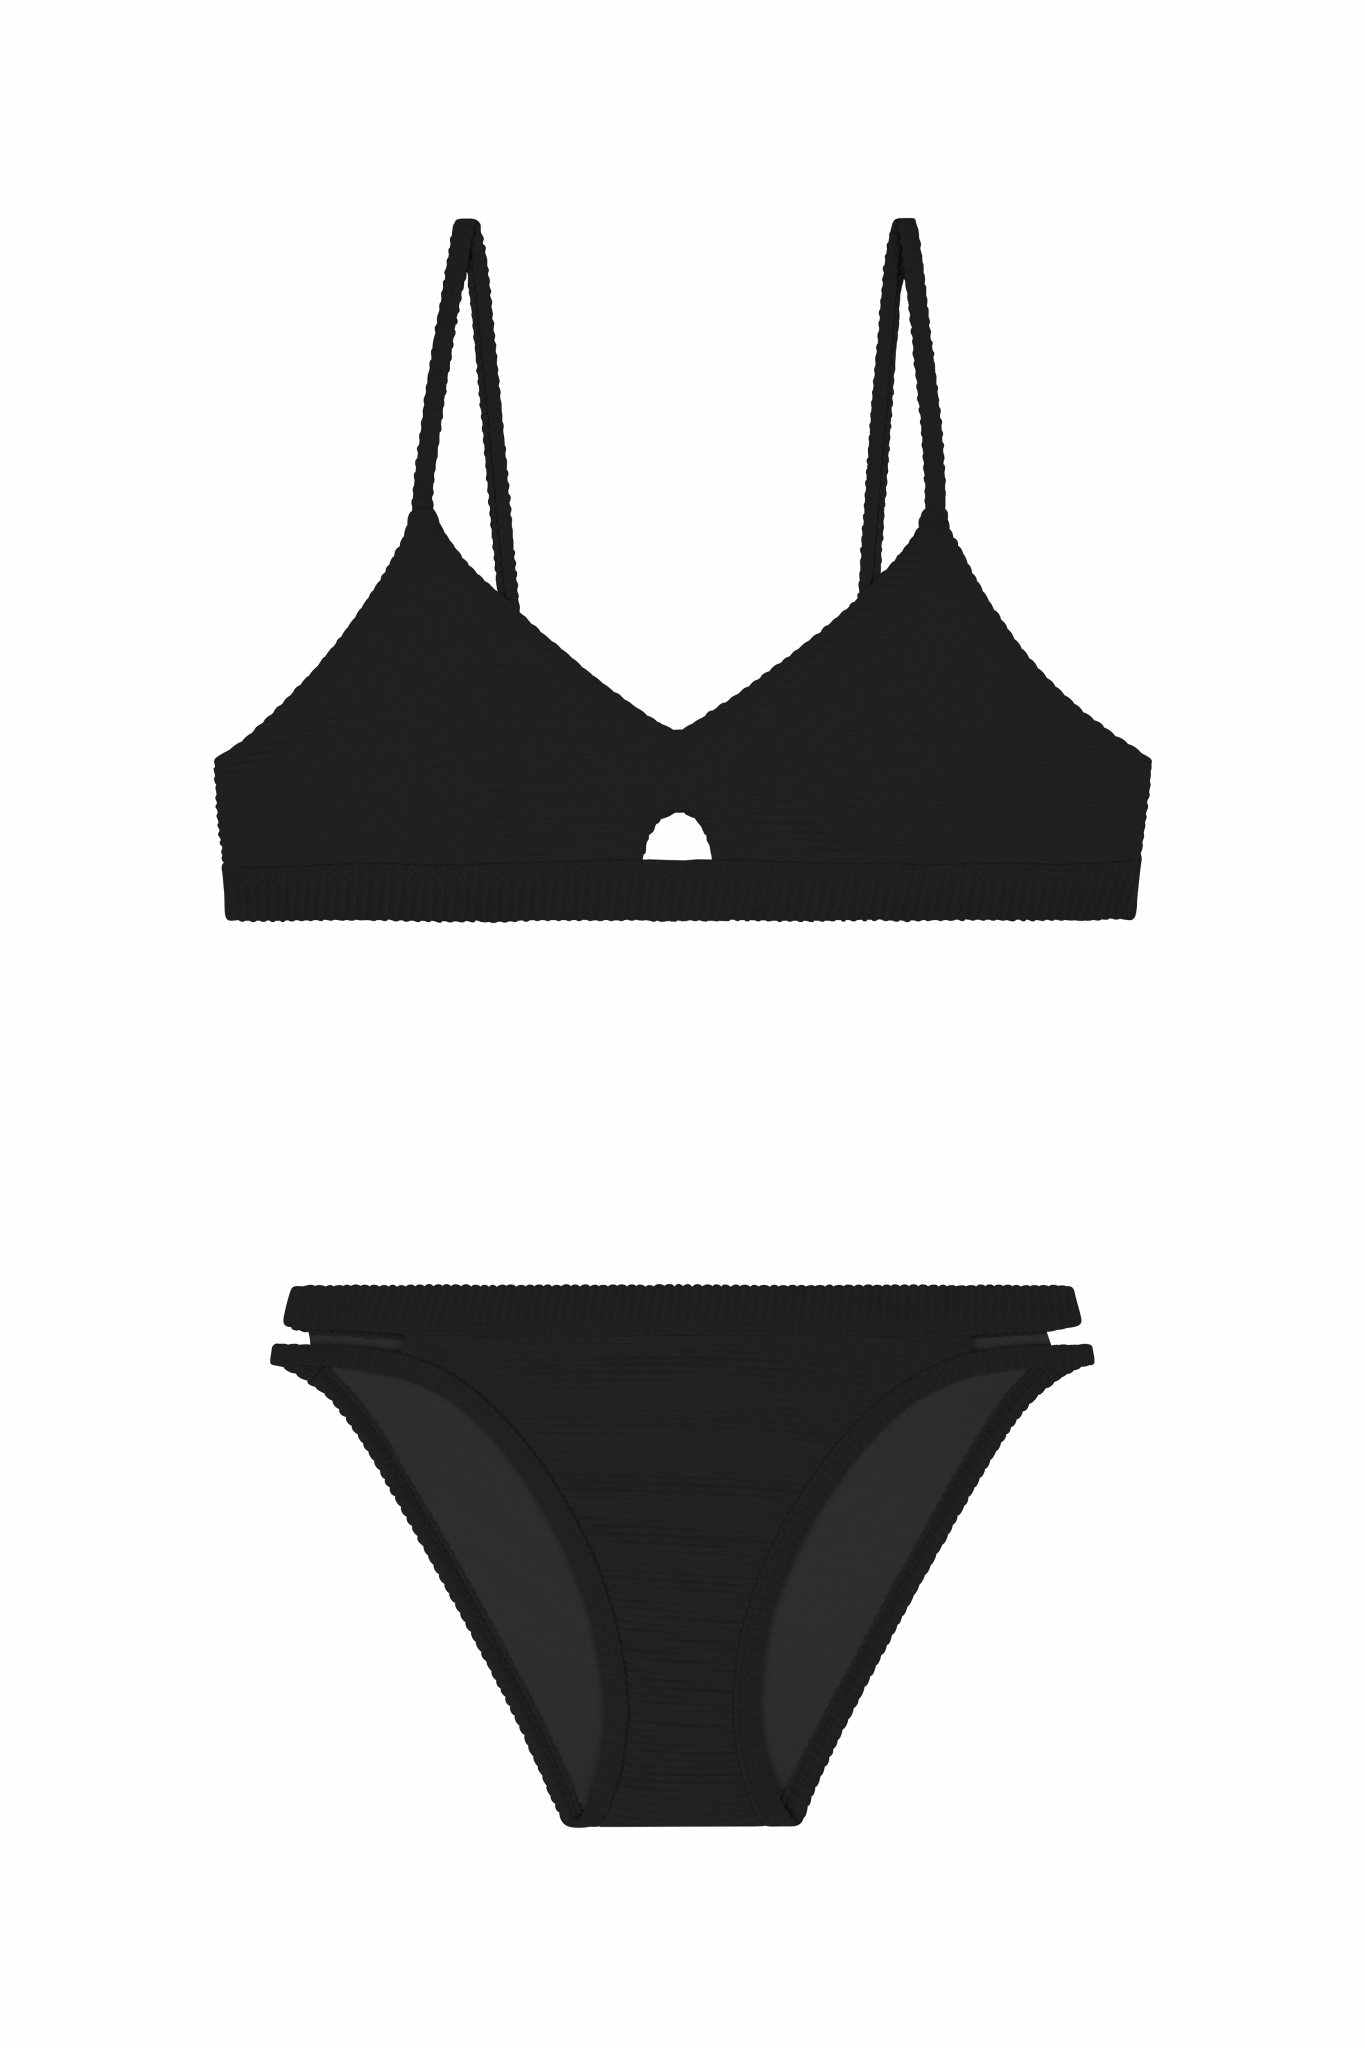 Seafolly Girls Bralette Tankini - Summer Essential